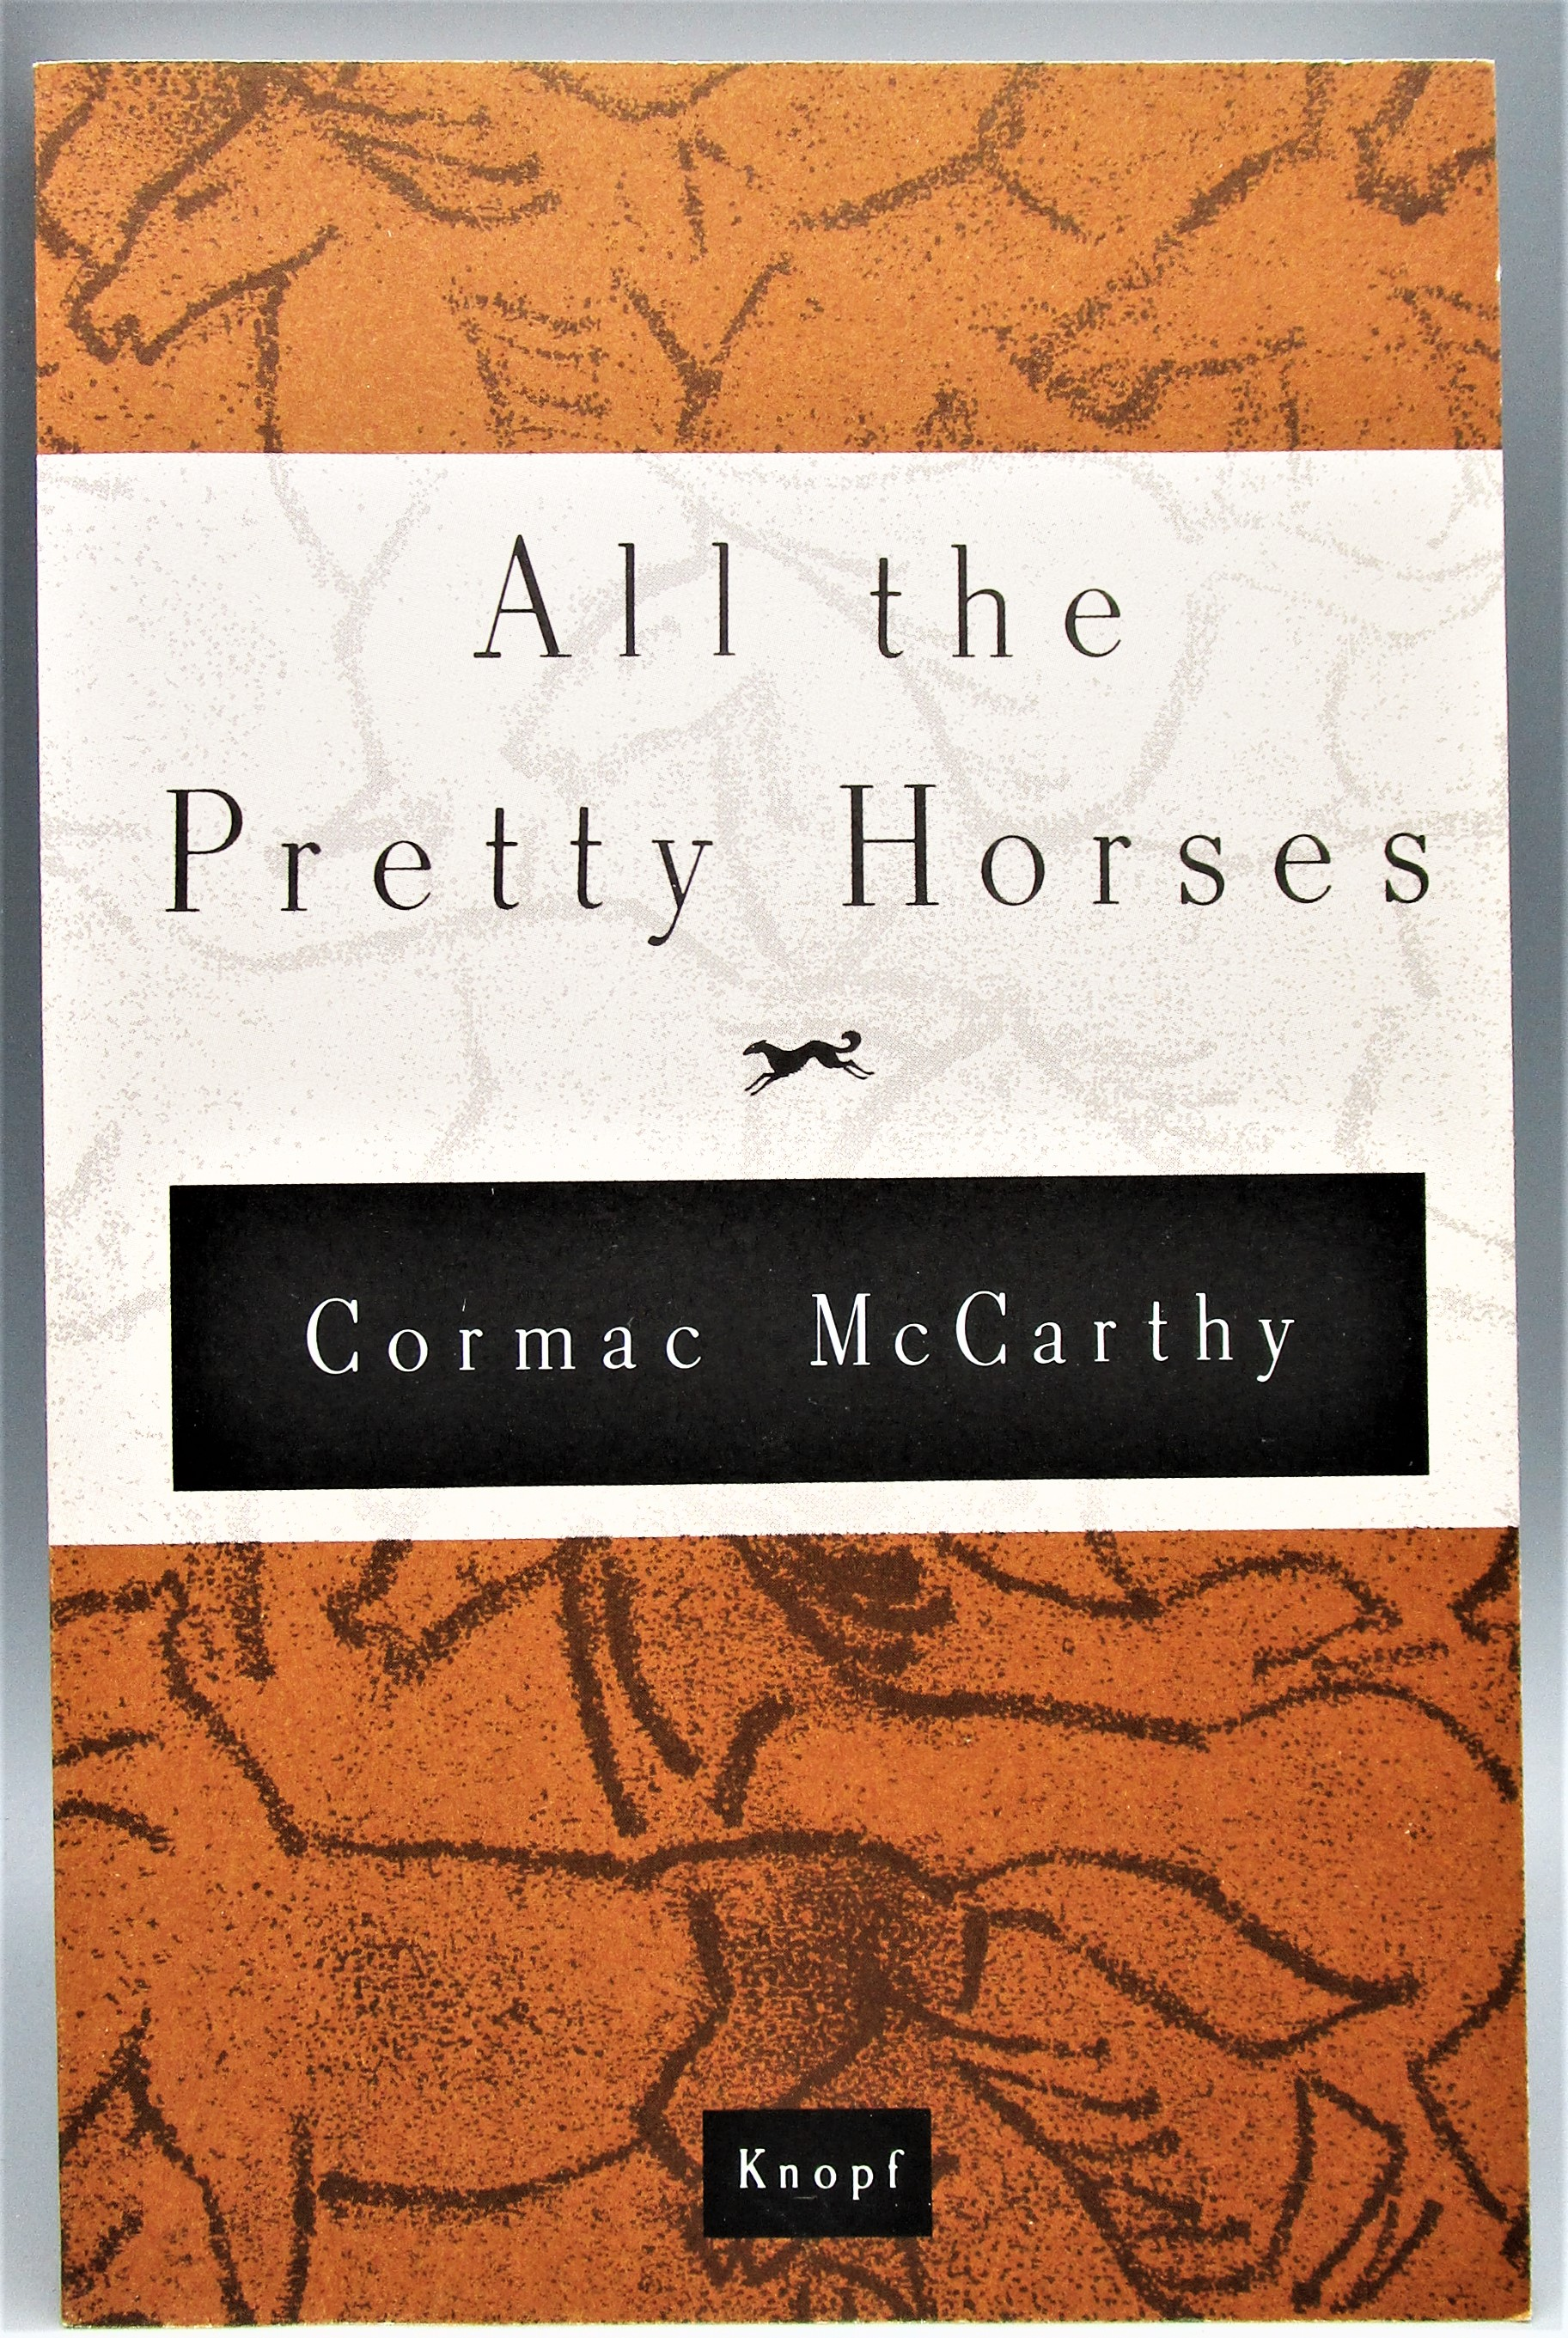 ALL THE PRETTY HORSES, by Cormac McCarthy - 1992 [Signed, Boxed 1st Ed]